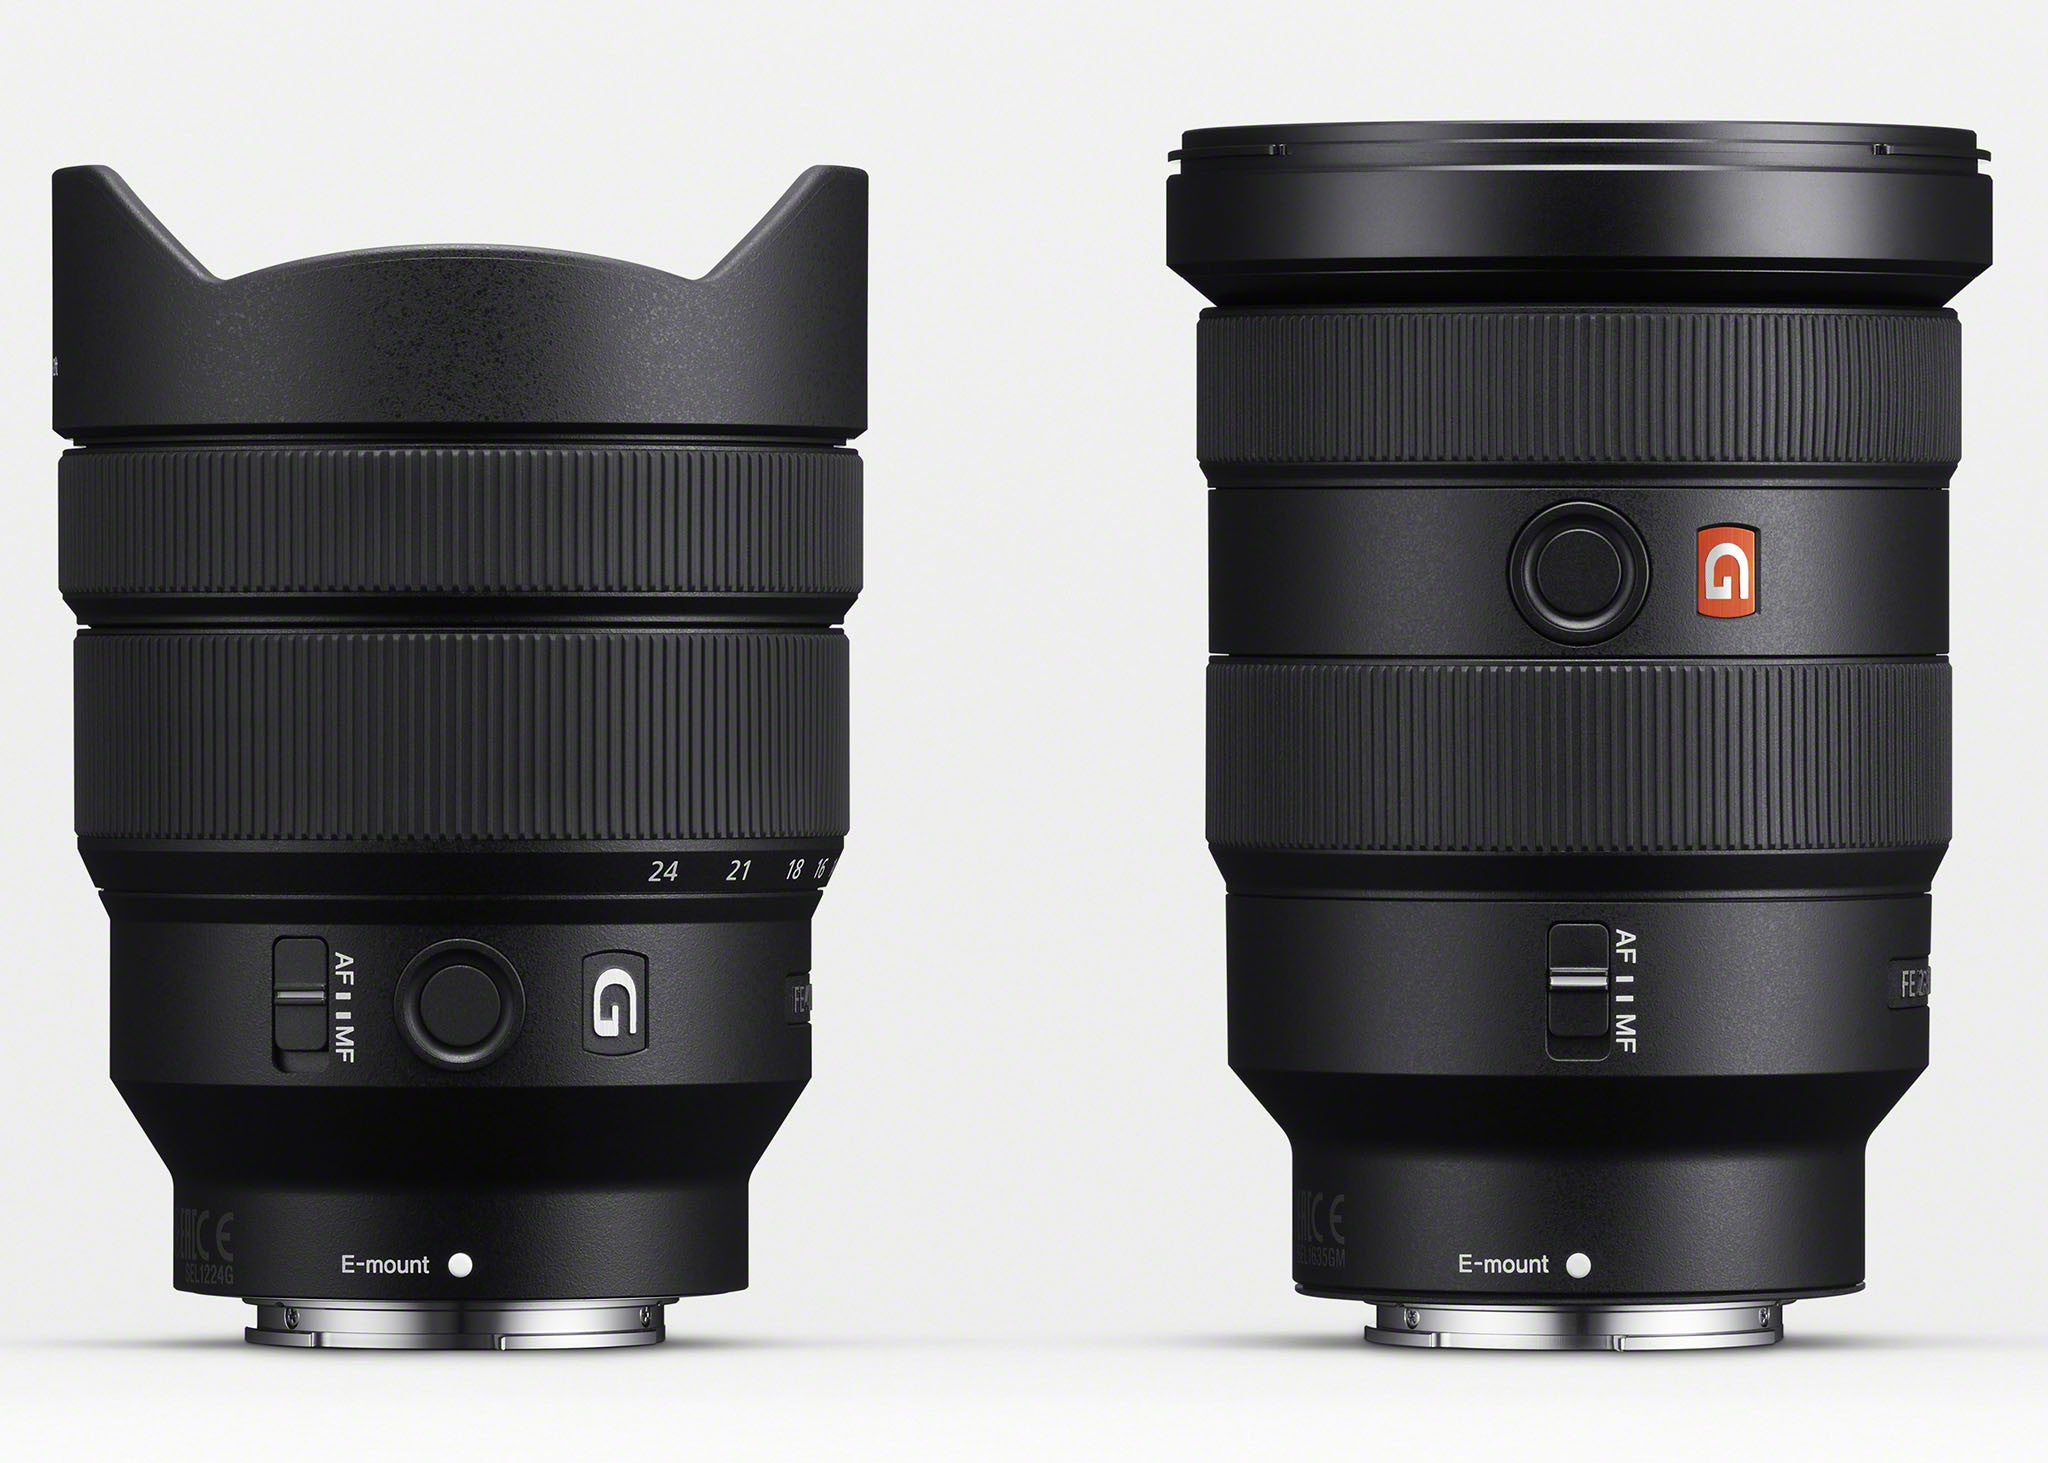 Two fresh perspectives on wide-angle photography just announced by Sony.